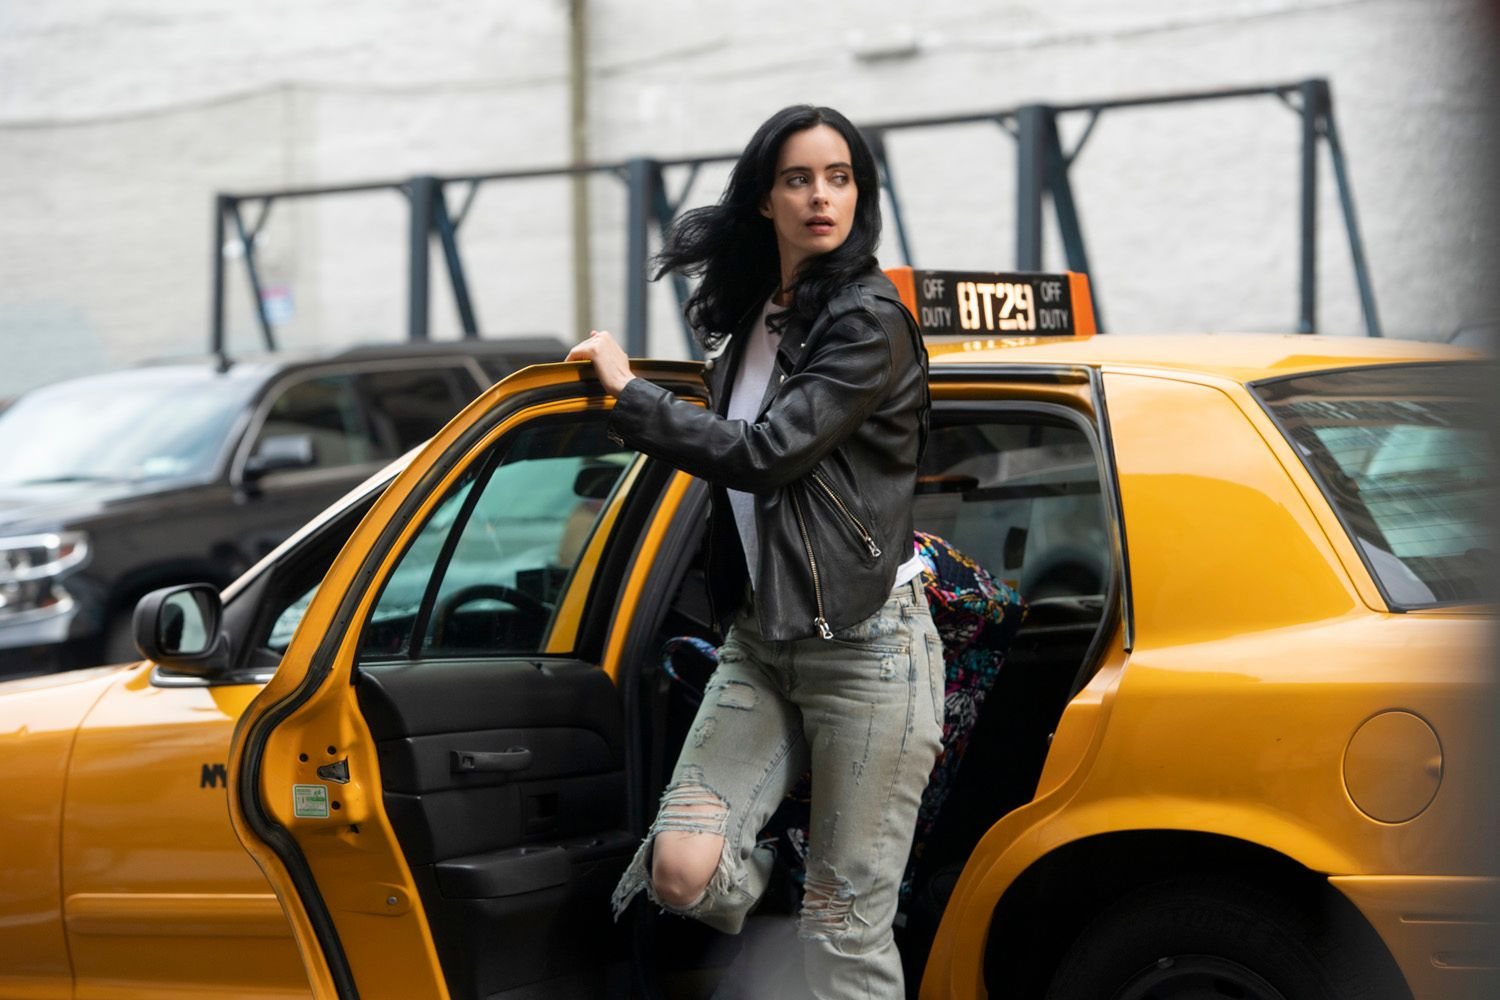 http://cdn.collider.com/wp-content/uploads/2019/05/jessica-jones-season-3-krysten-ritter.jpg